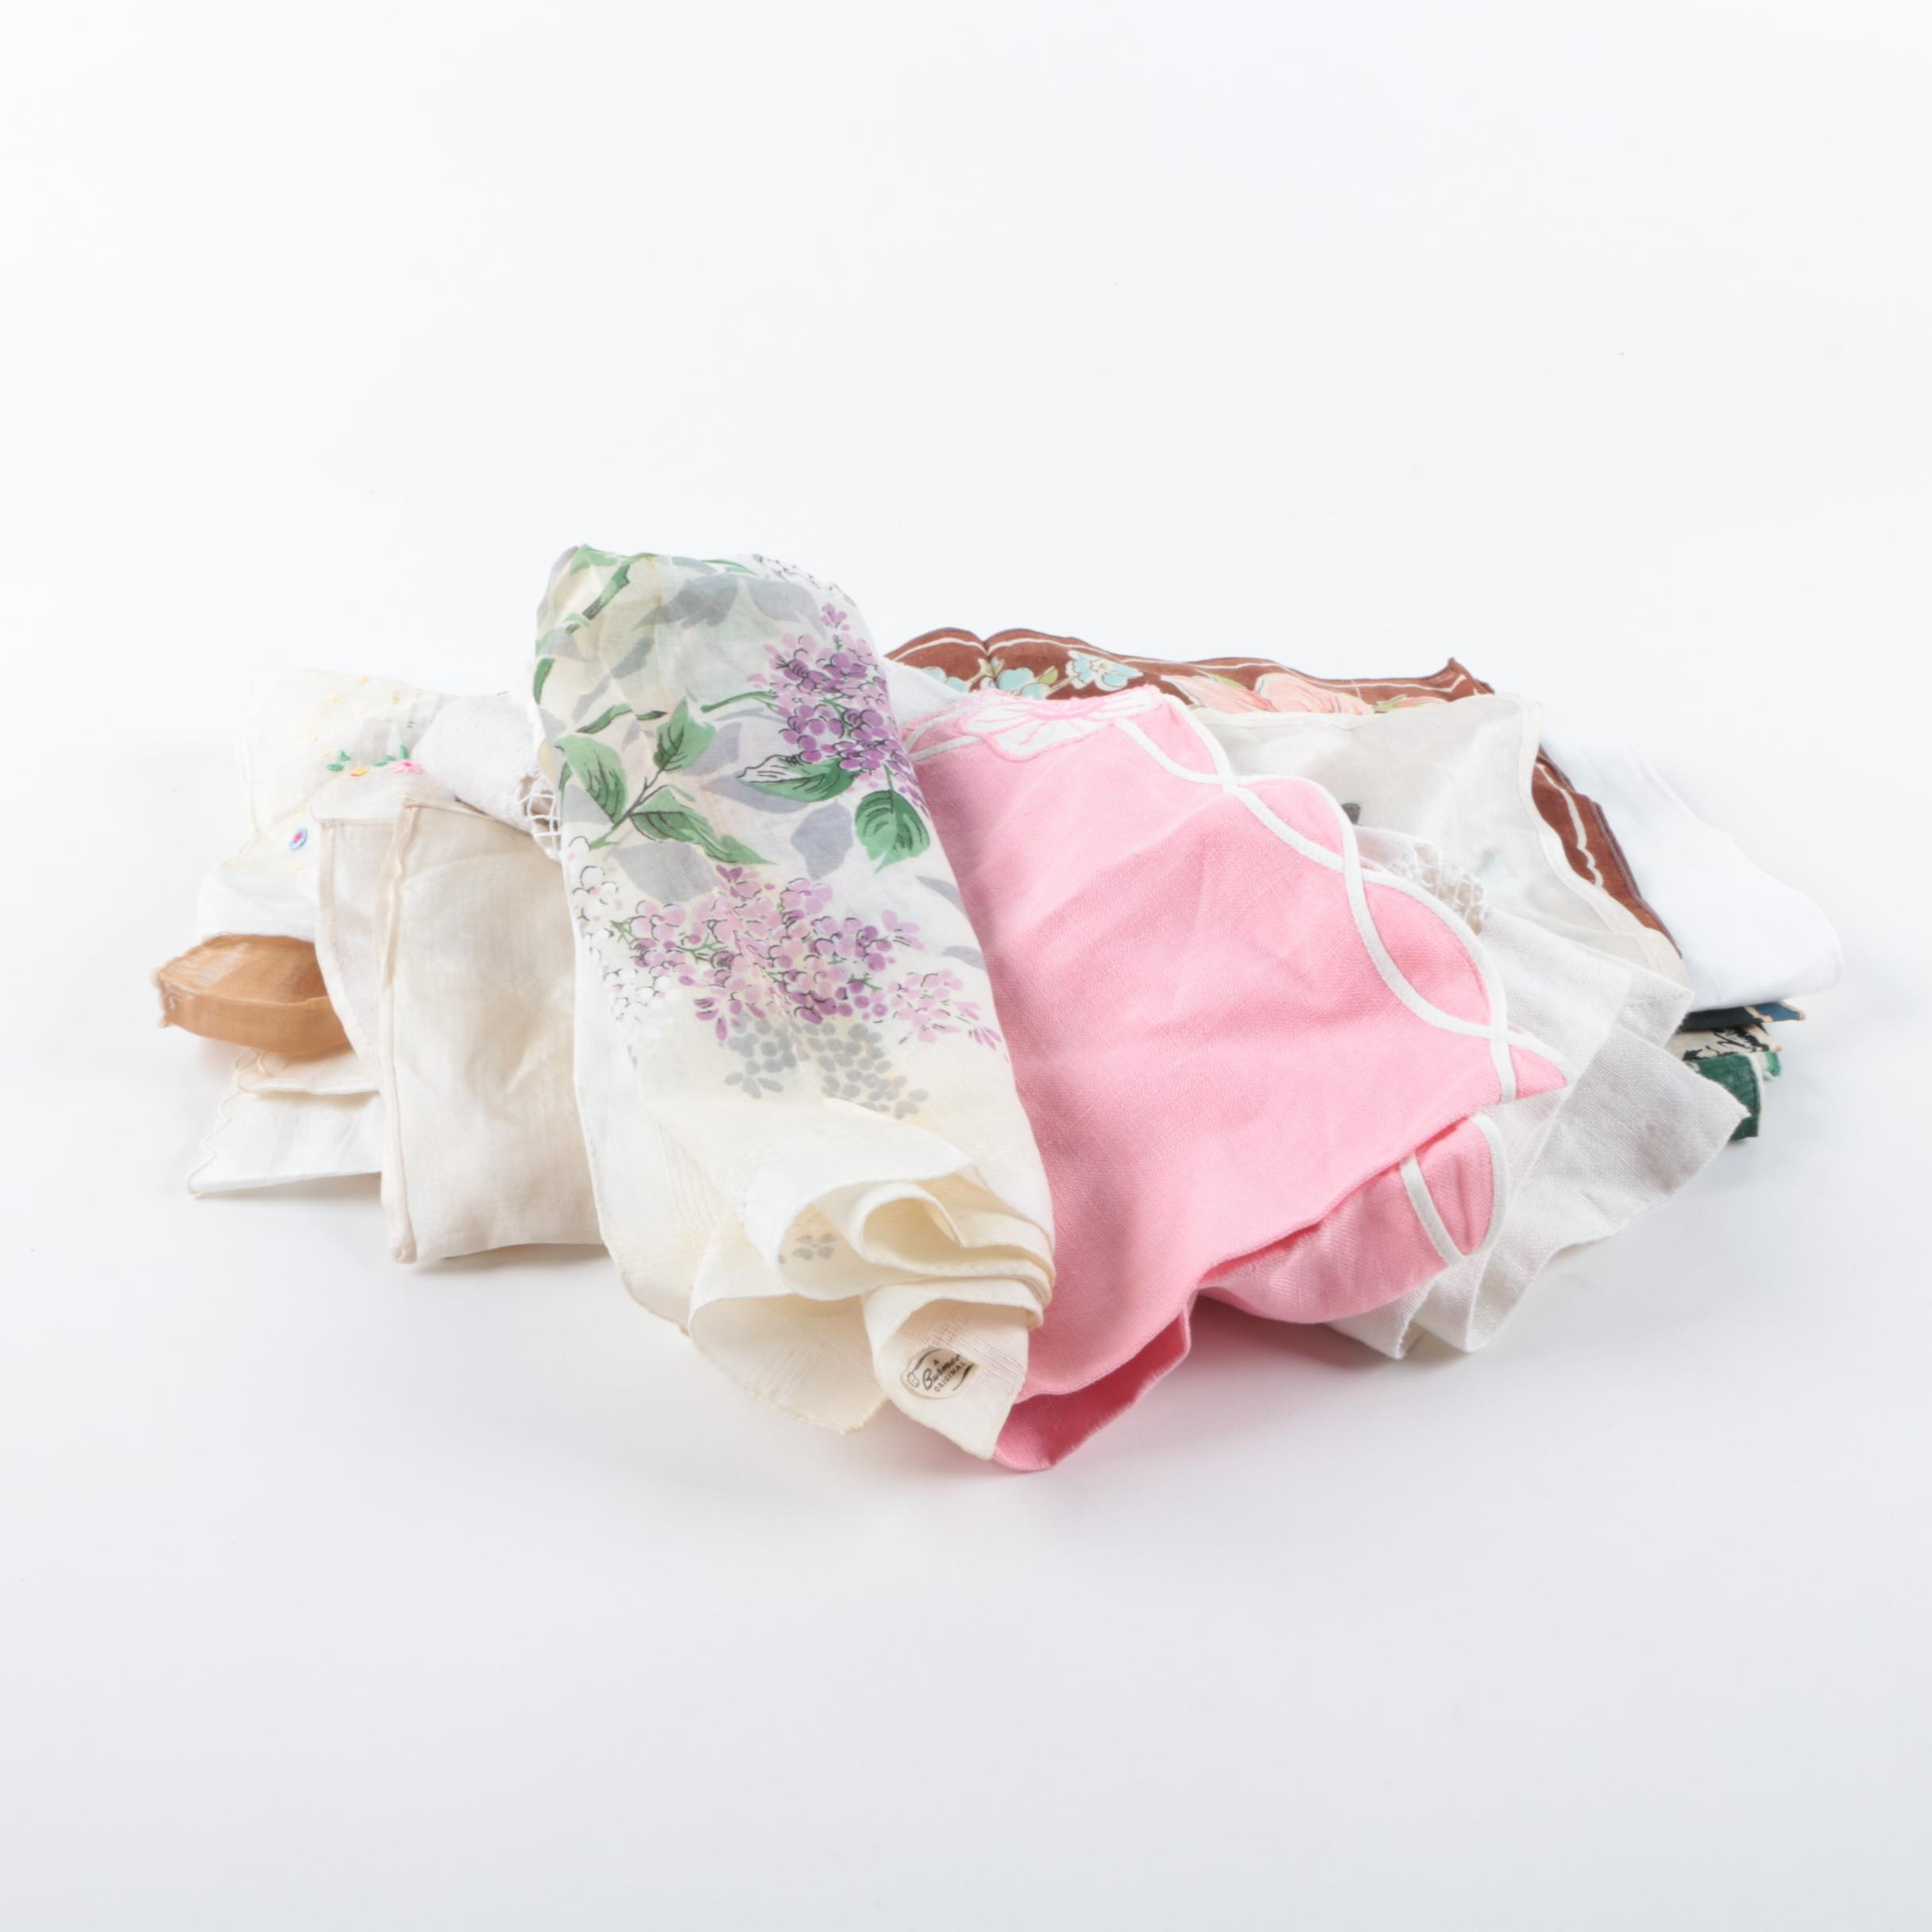 Vintage Embroidered Handkerchiefs